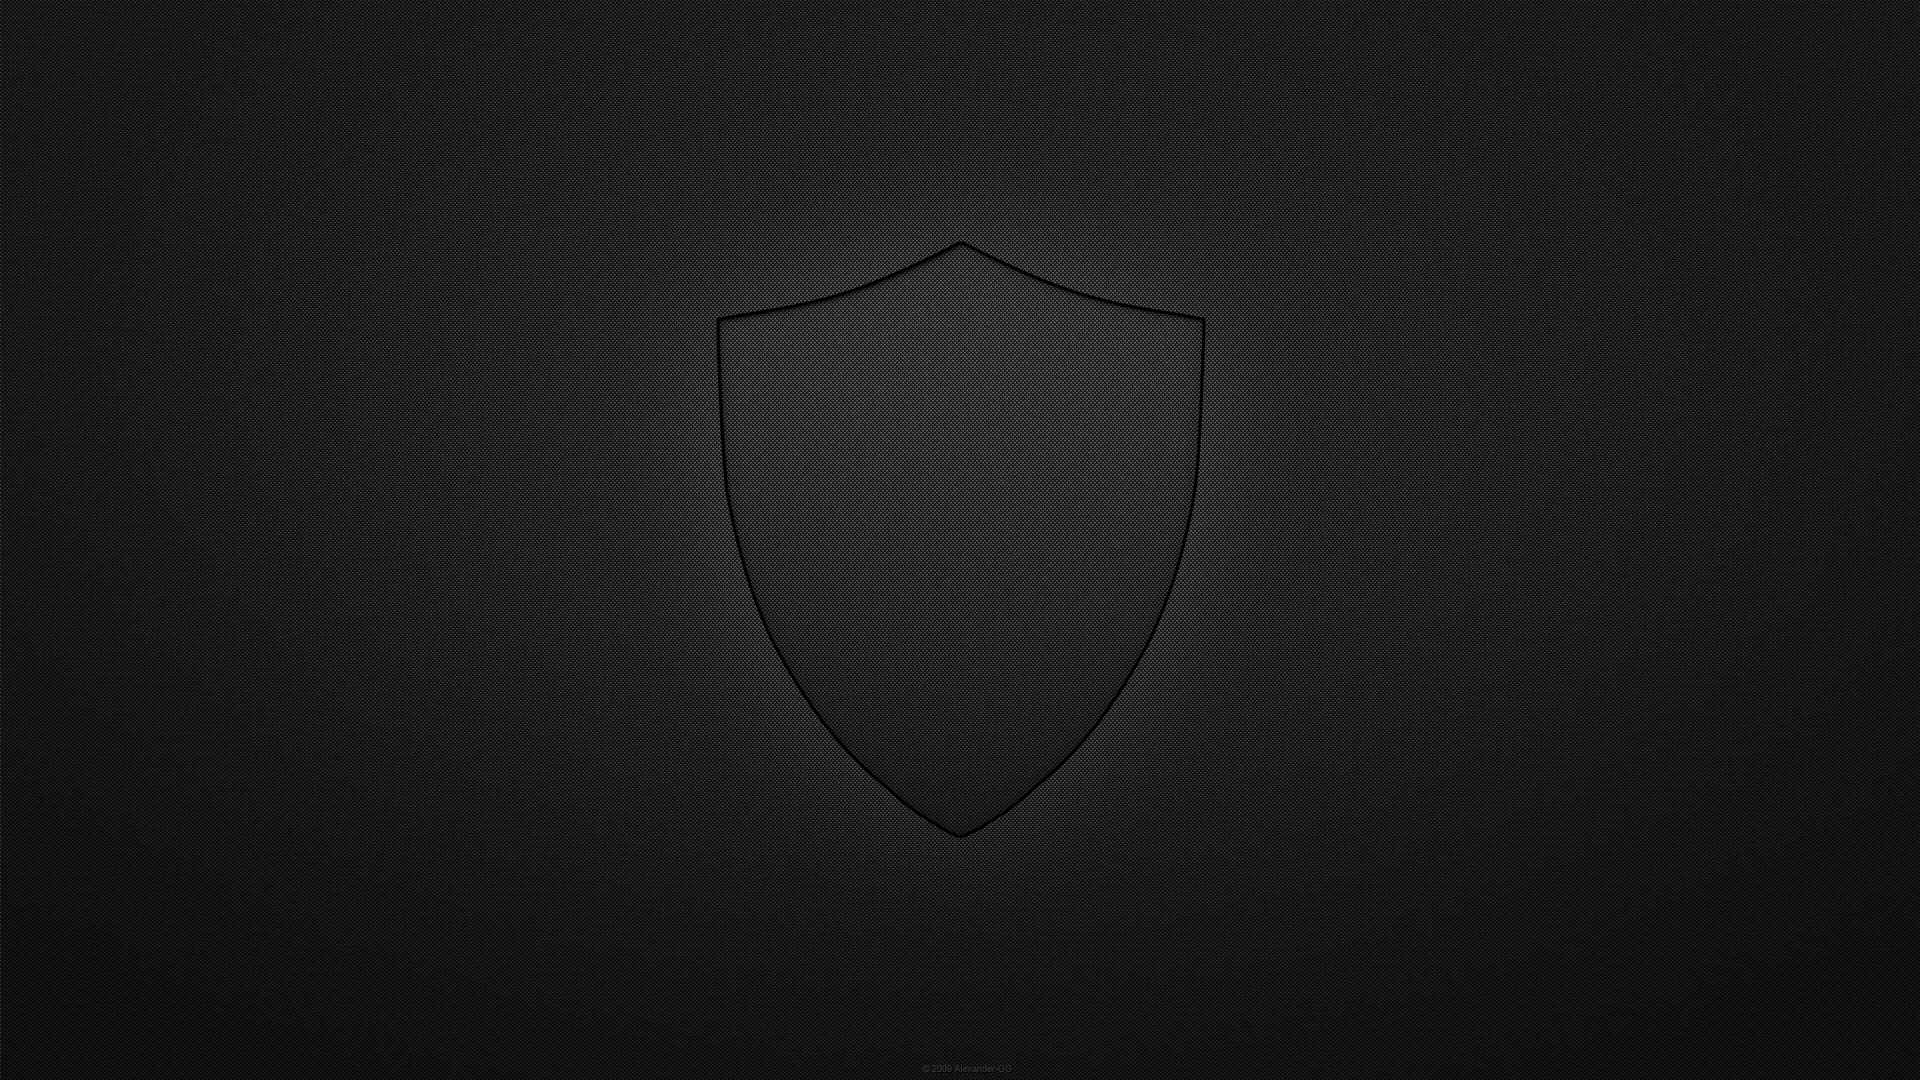 Security Hacker Shadow WallPaper 2013 (1920x1080) by securityhacker